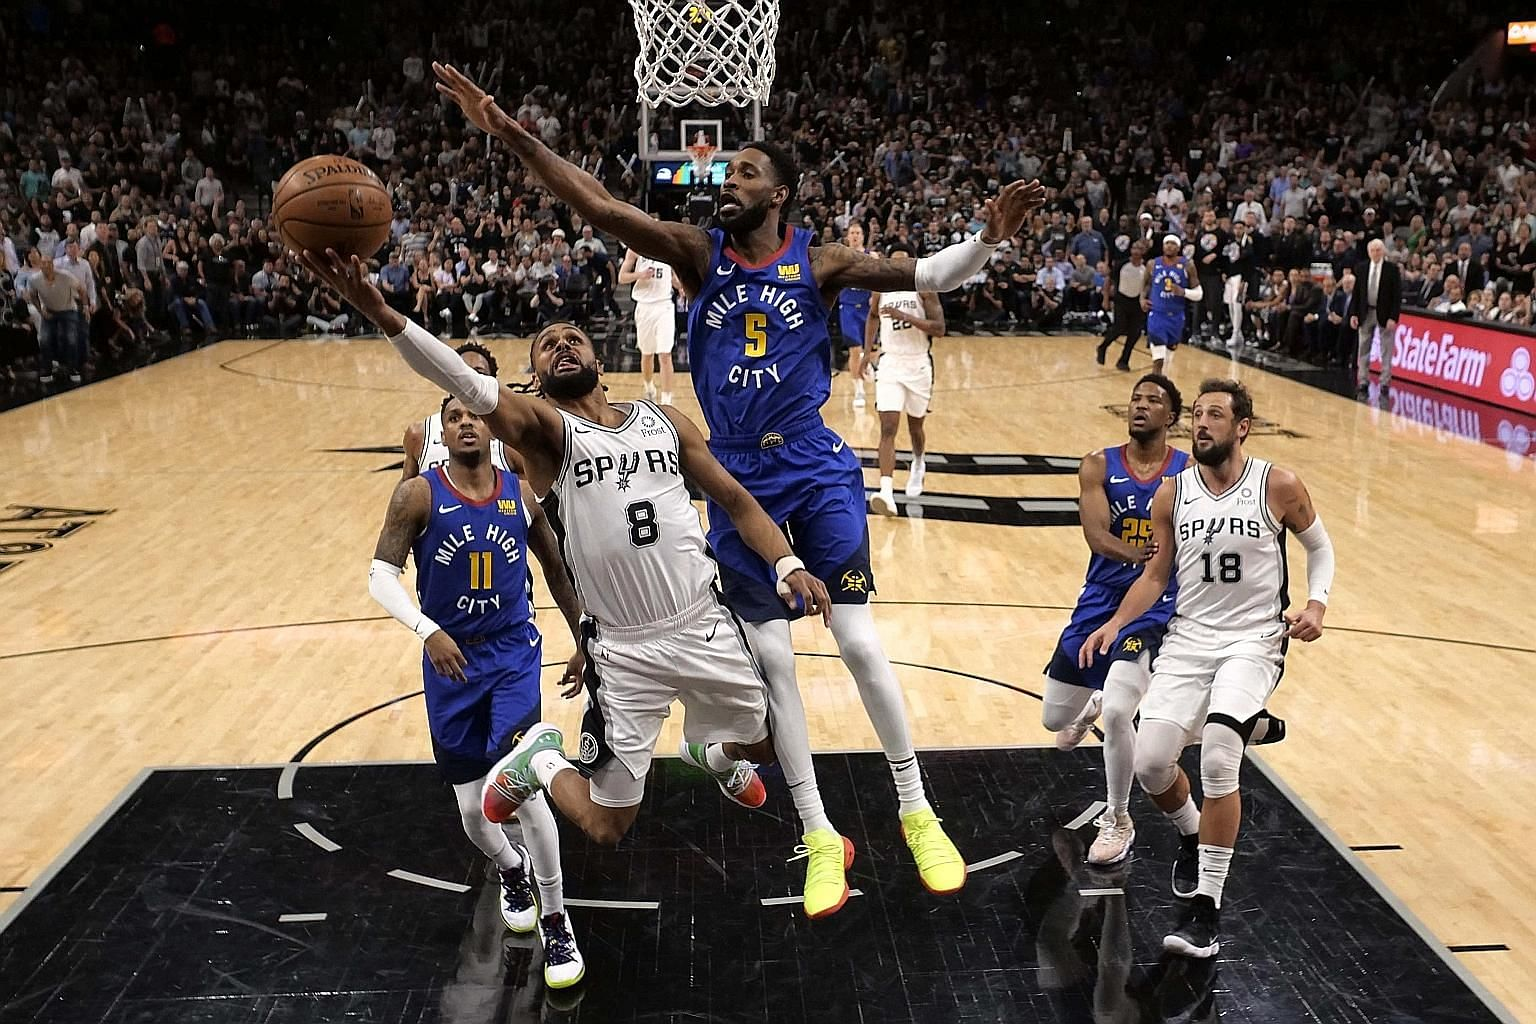 San Antonio's Patty Mills going for the basket while under pressure from Denver Nuggets' Will Barton during Game 6 of their NBA play-off first-round series. Spurs won 120-103.